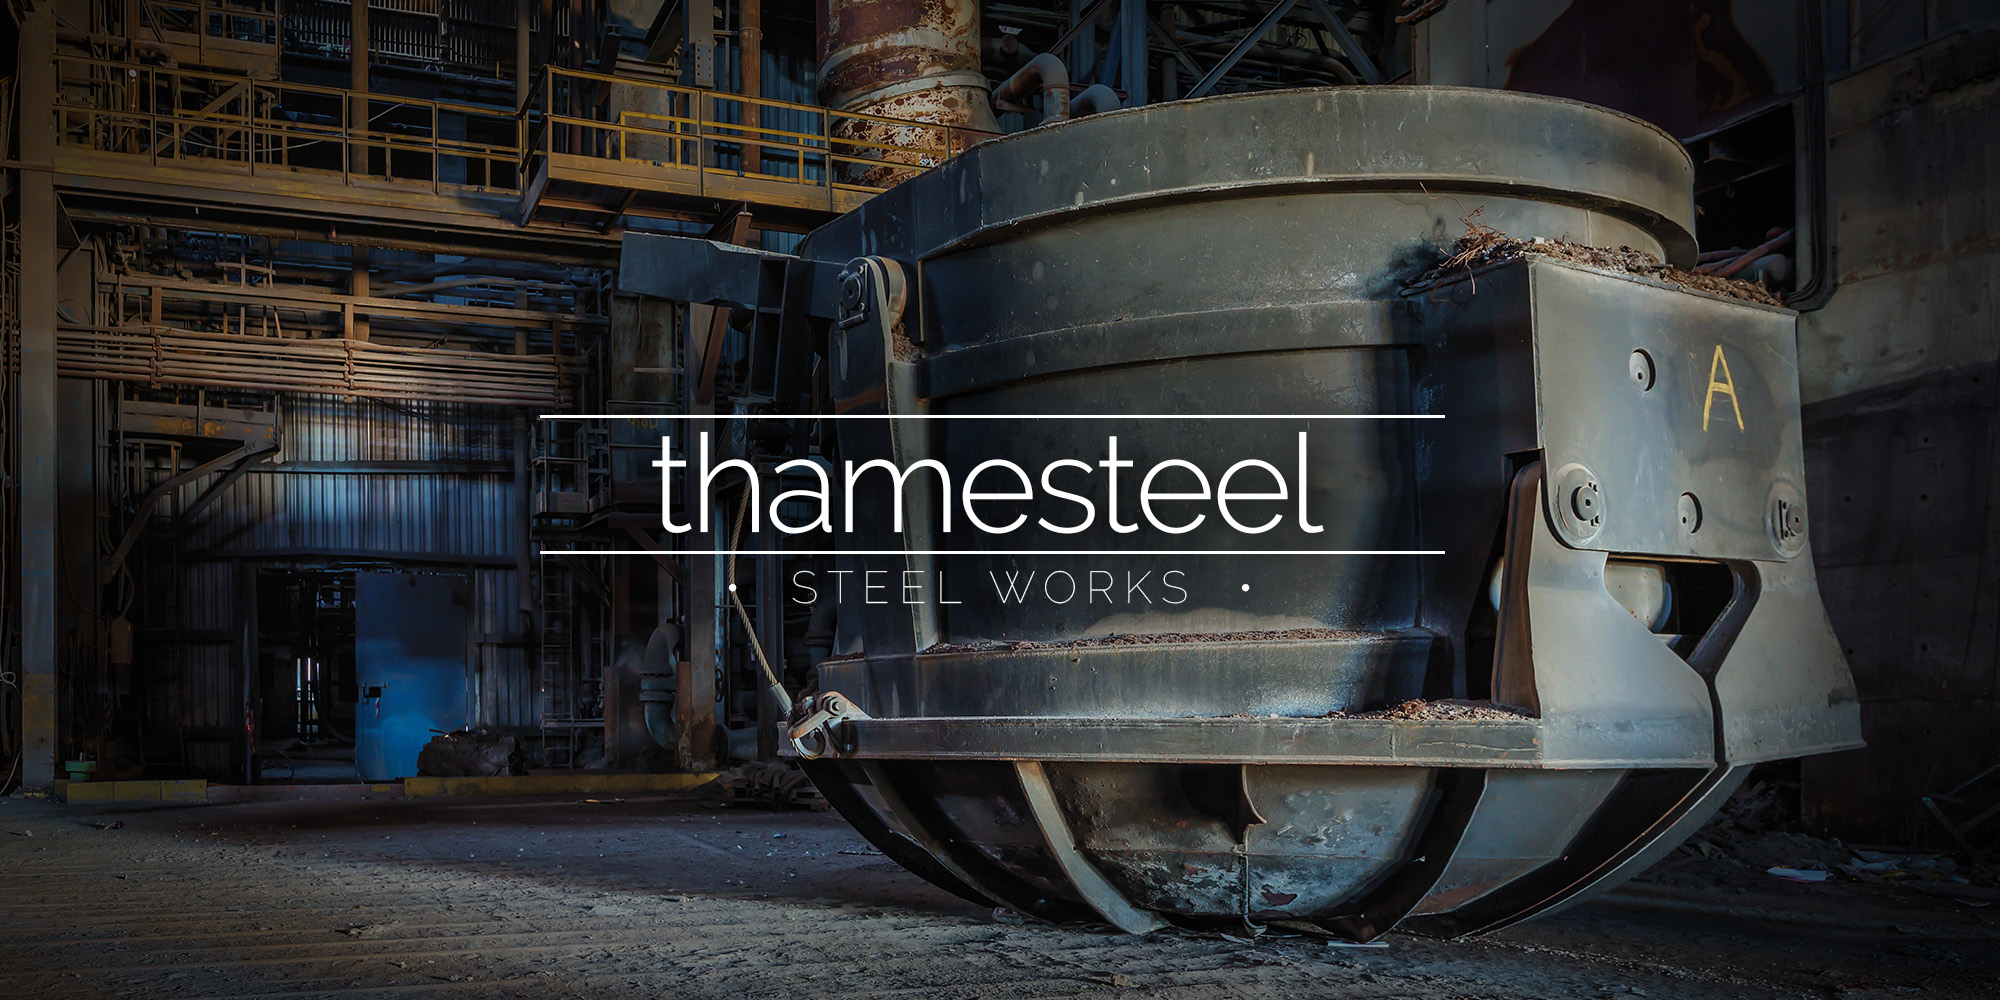 Thamesteel Steel Works, Sheerness